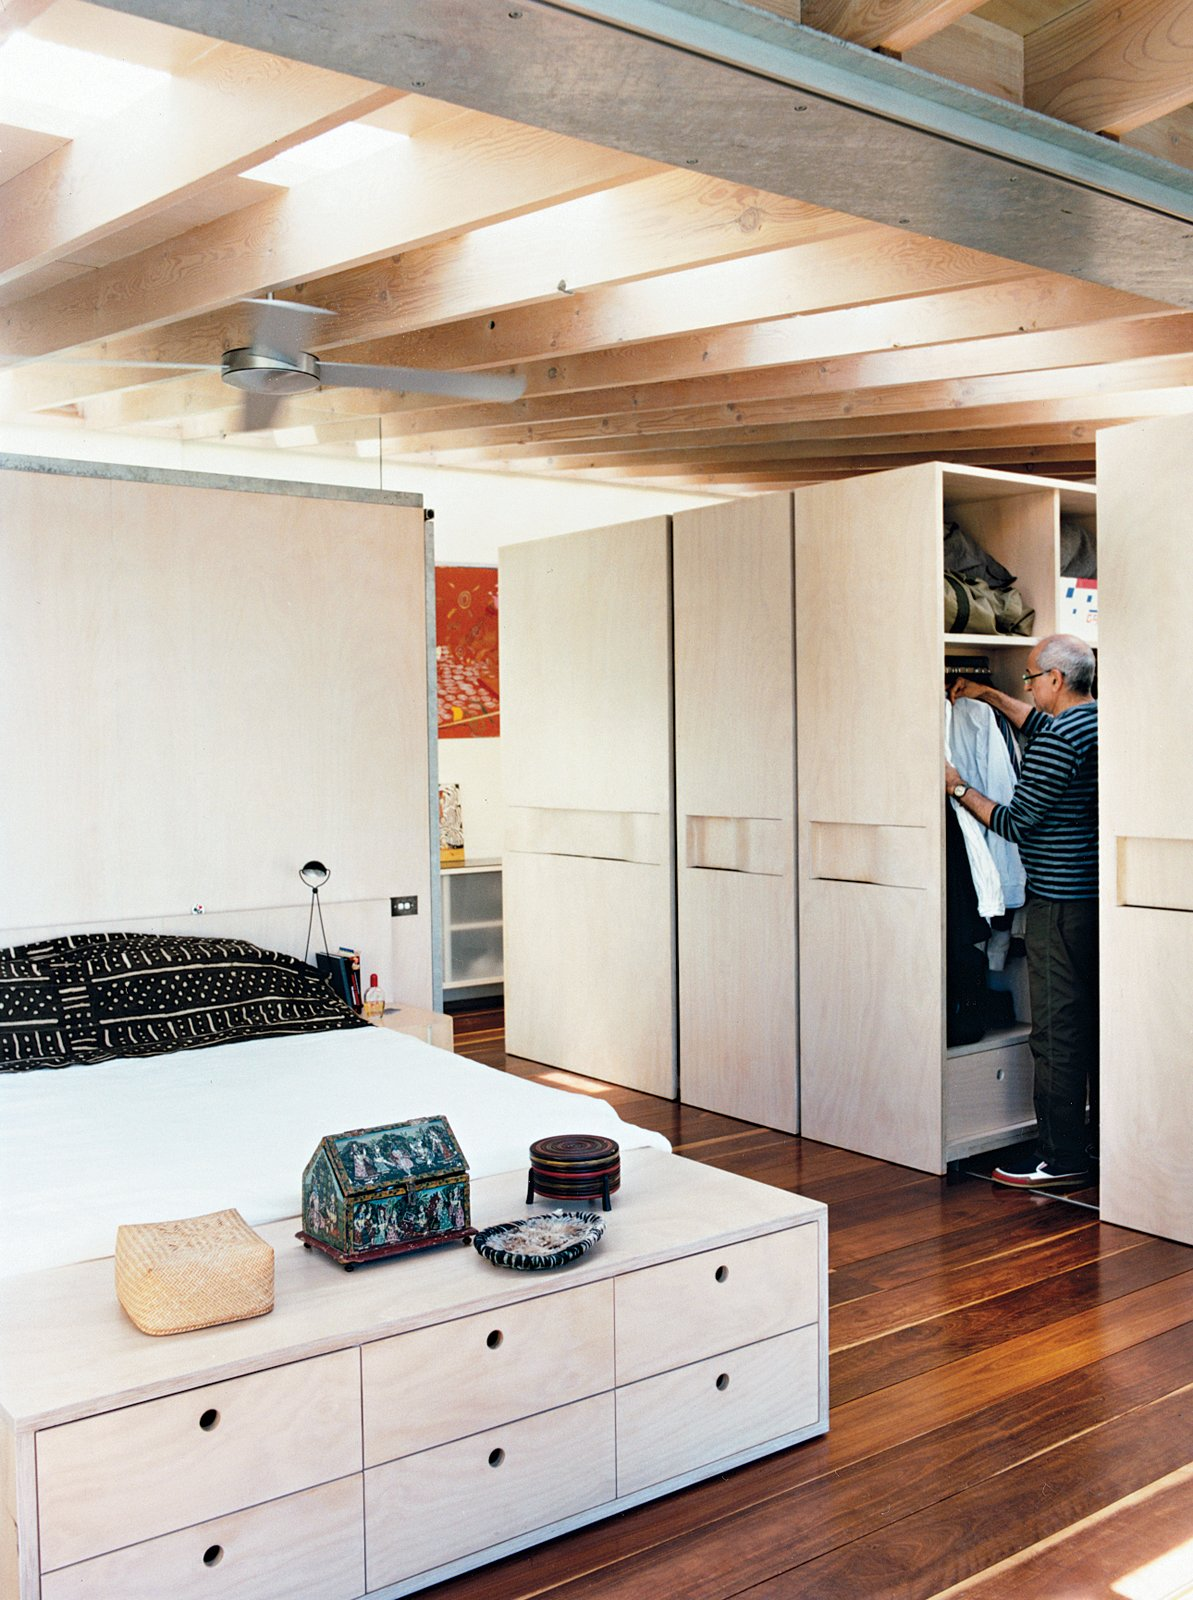 Bedroom, Bed, Storage, Night Stands, Table Lighting, Dark Hardwood Floor, and Wardrobe The bedroom contains an ingenious closet system similar to library stacks. These large sliding cabinets open up to make way for Zulaikha and Laurence as they hang their clothes or access anything else kept in storage.  Surprising Clothing Storage Solutions by Jaime Gillin from A Measured Approach